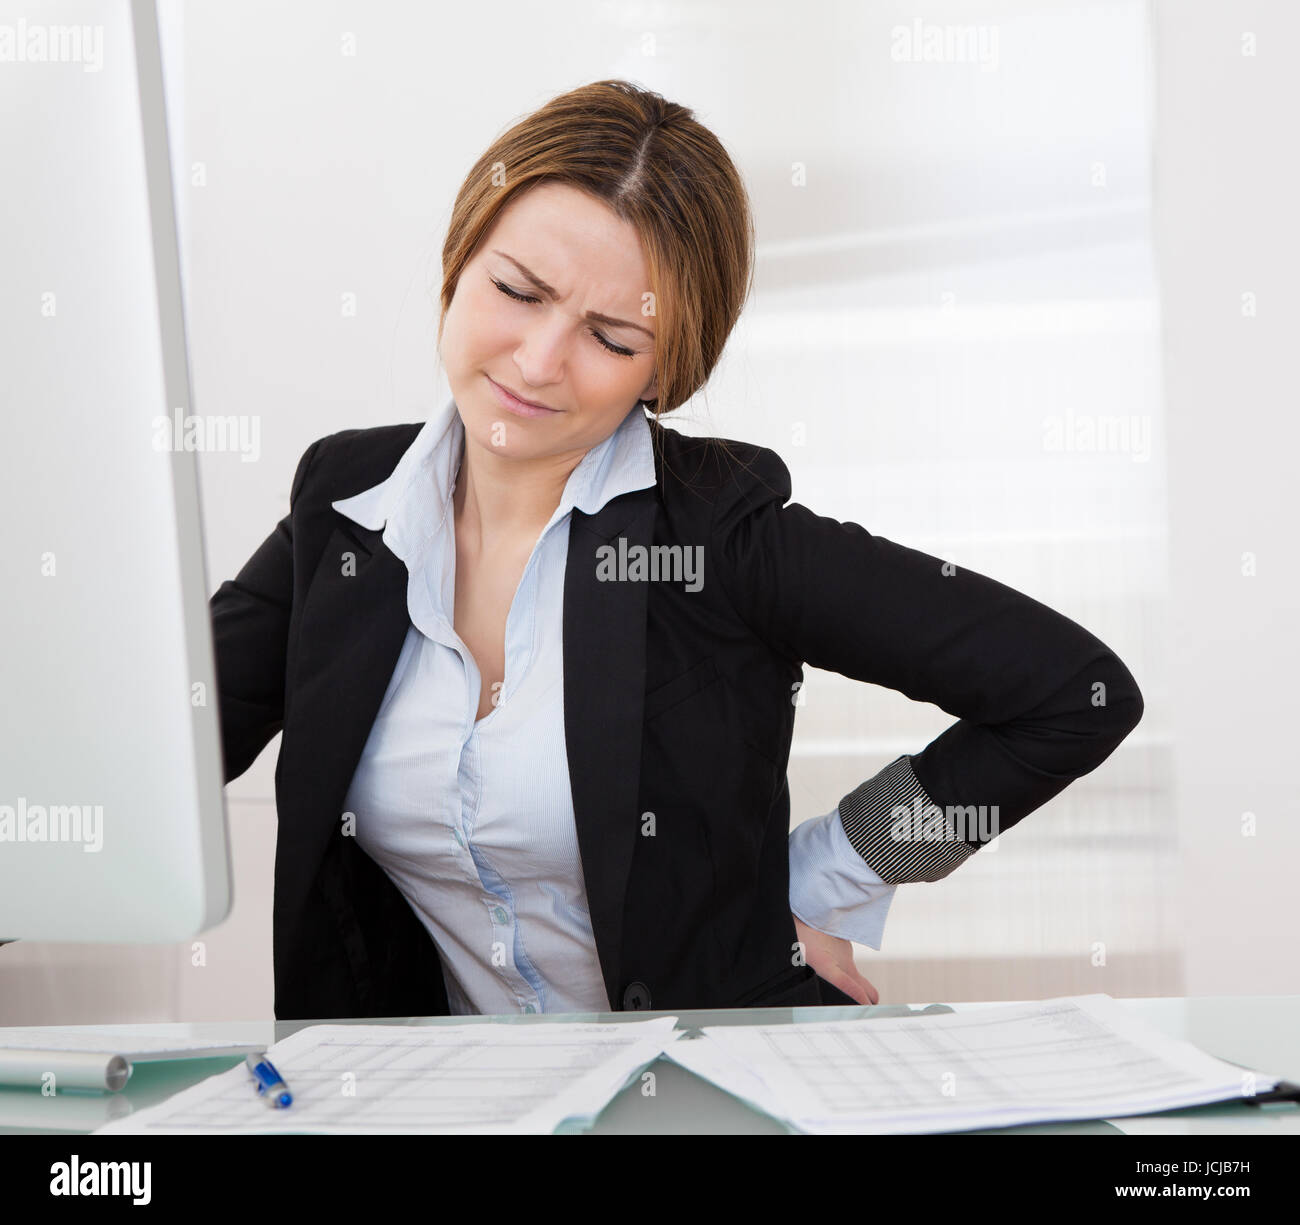 Business Woman With Back Pain Holding Her Aching Hip - Stock Image